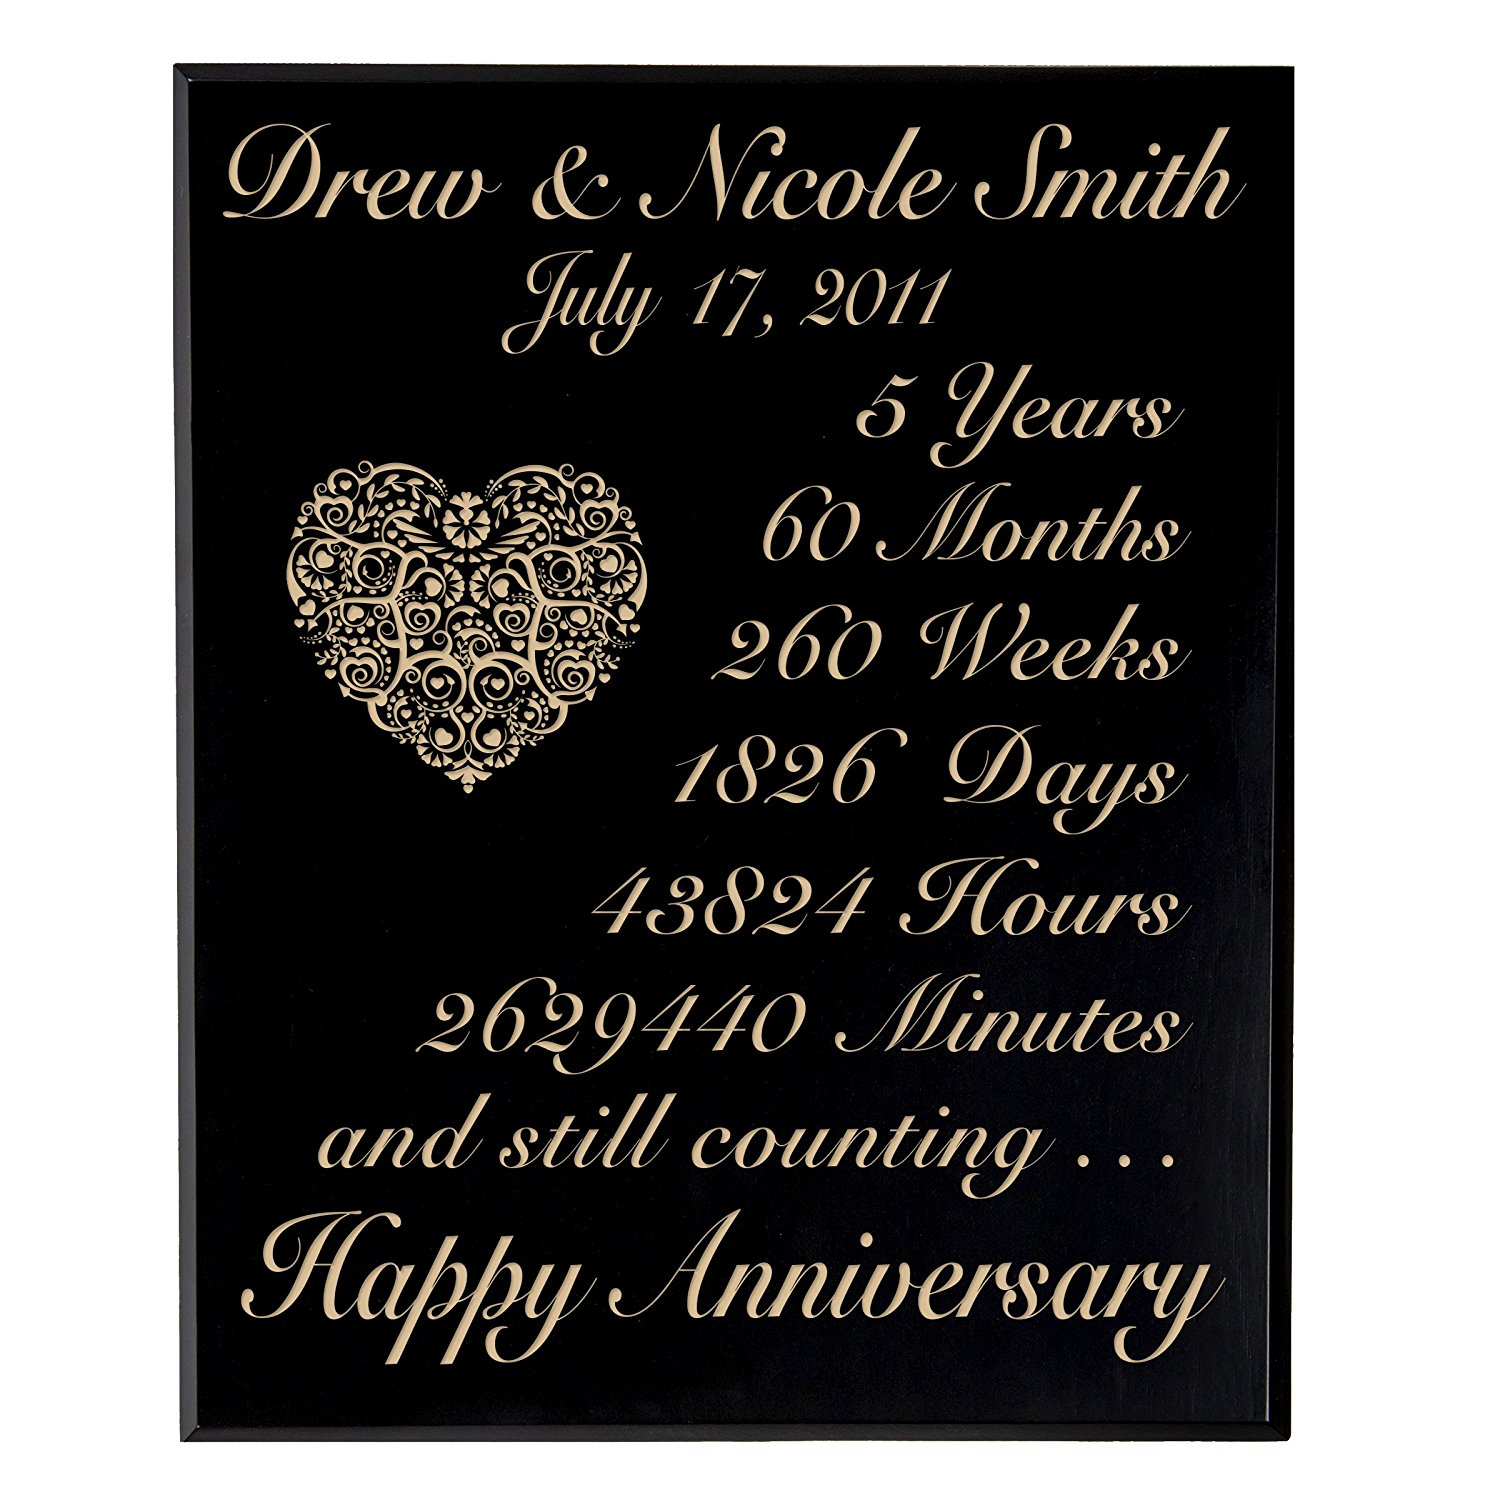 Buy Personalized 5th Wedding Anniversary Wall Plaque Gifts For